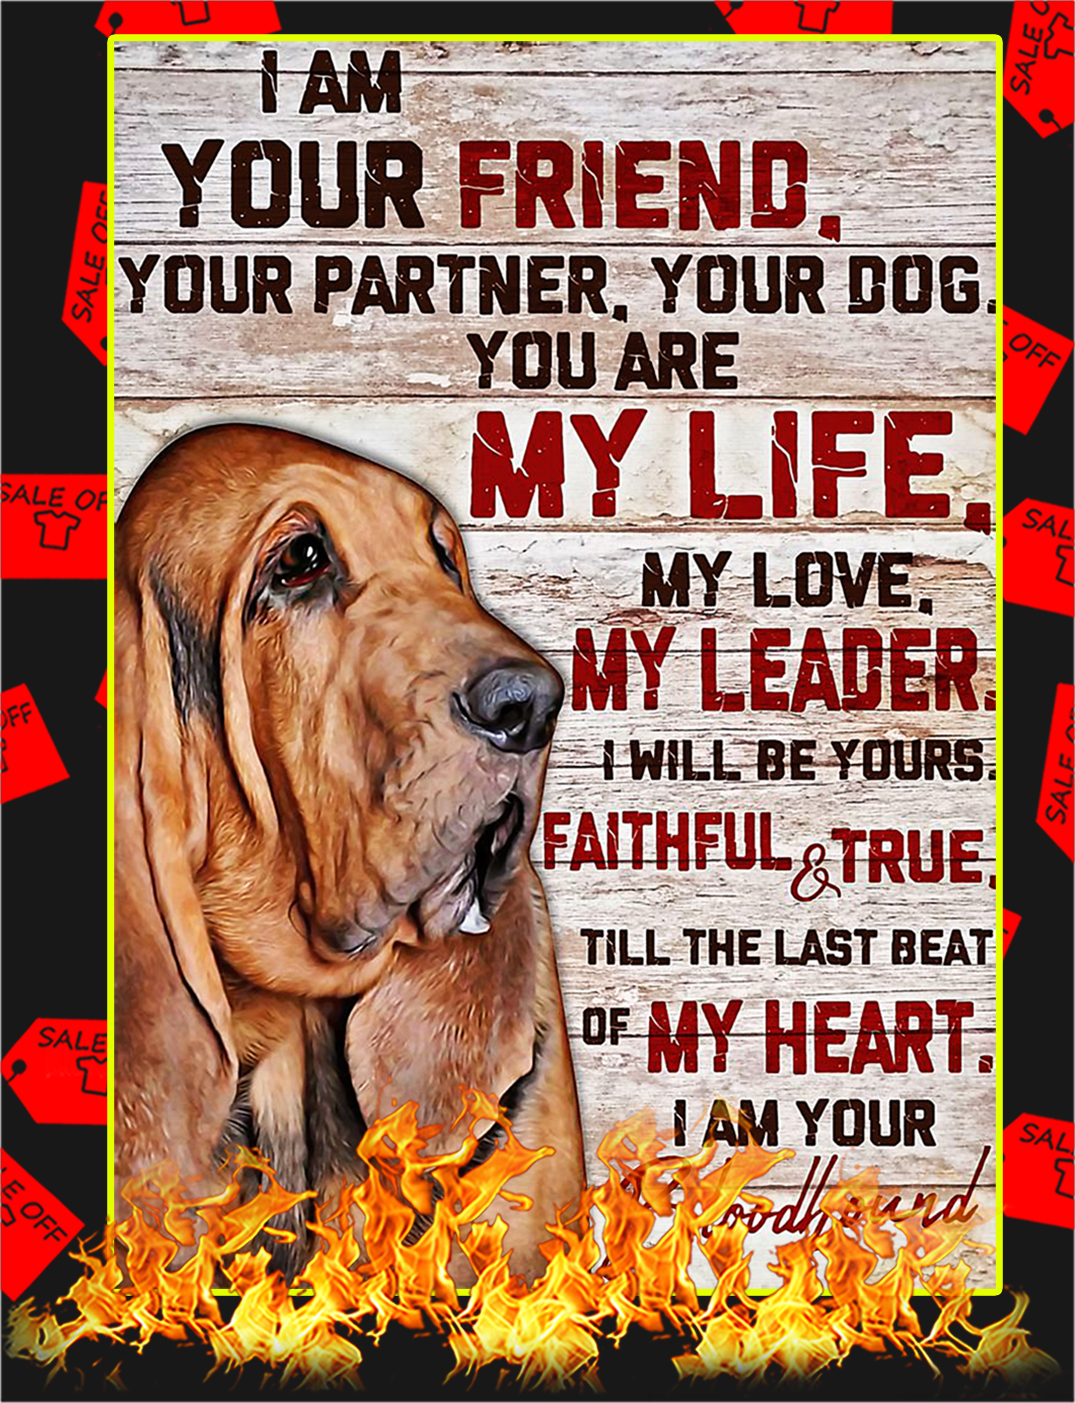 Bloodhound I'm your friend poster - A3